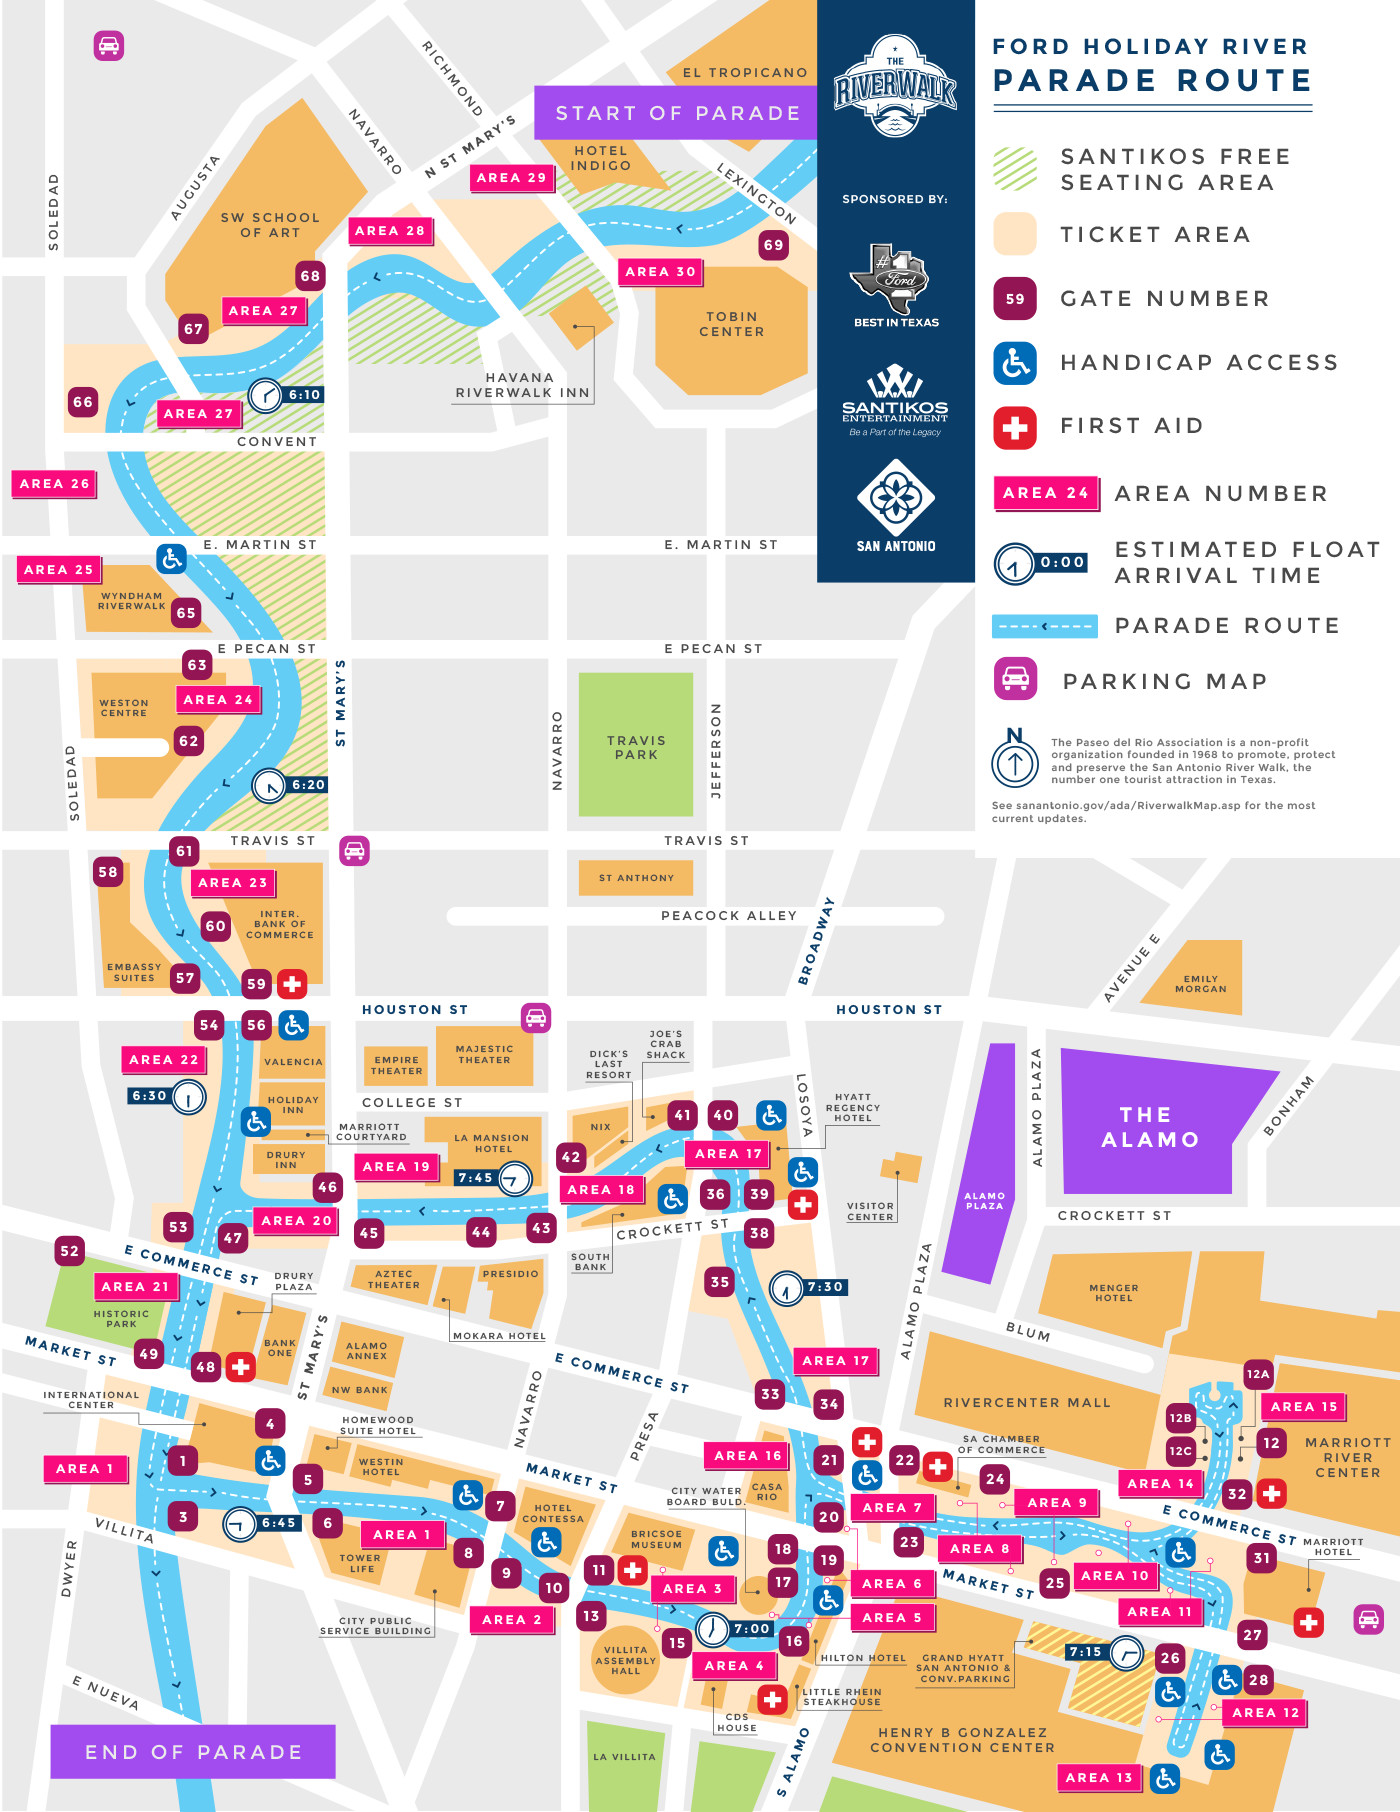 2017 Ford Holiday River Parade San Antonio Riverwalk Map Of Hotels on map of san antonio area, map of clearwater florida, map of san antonio missions, map of big bear ca, map of old san juan, map of san antonio downtown hotels, map of clearwater beach fl, map of wi dells, map of san antonio suburbs, map of busch gardens tampa, map of san antonio airport hotels, map of san antonio texas, map of san antonio attractions, map of san antonio counties, map of san antonio subdivisions, map of san antonio streets, map of san antonio 1836,